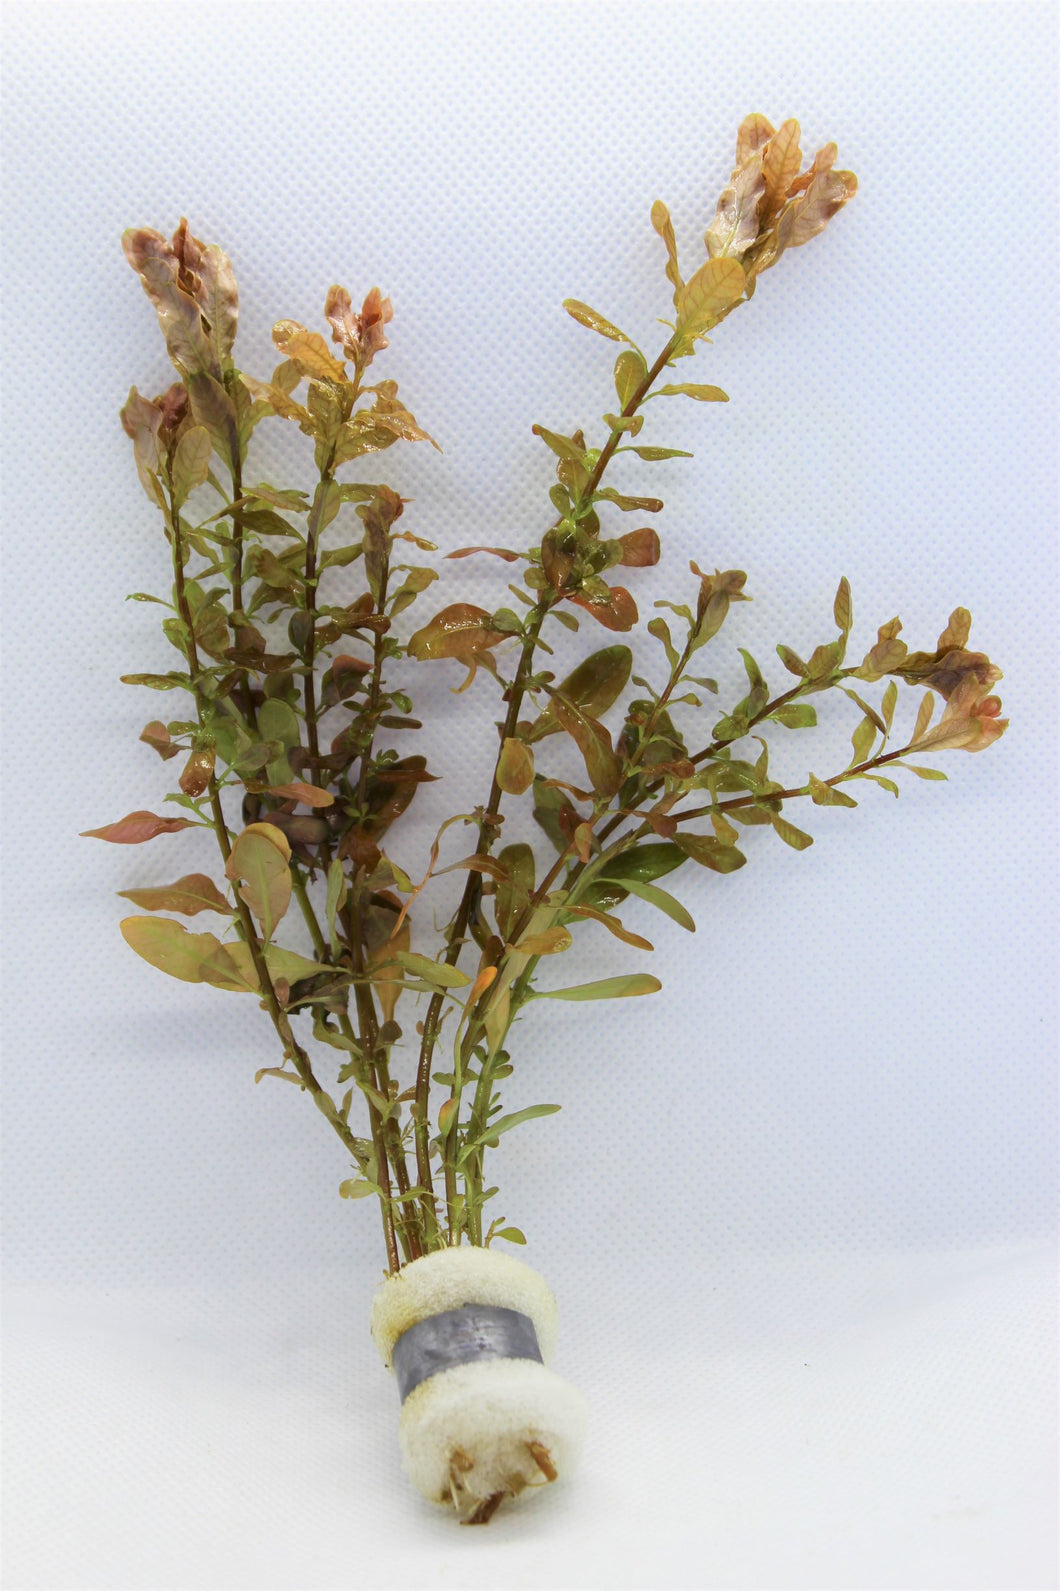 Ludwigia Inclinata